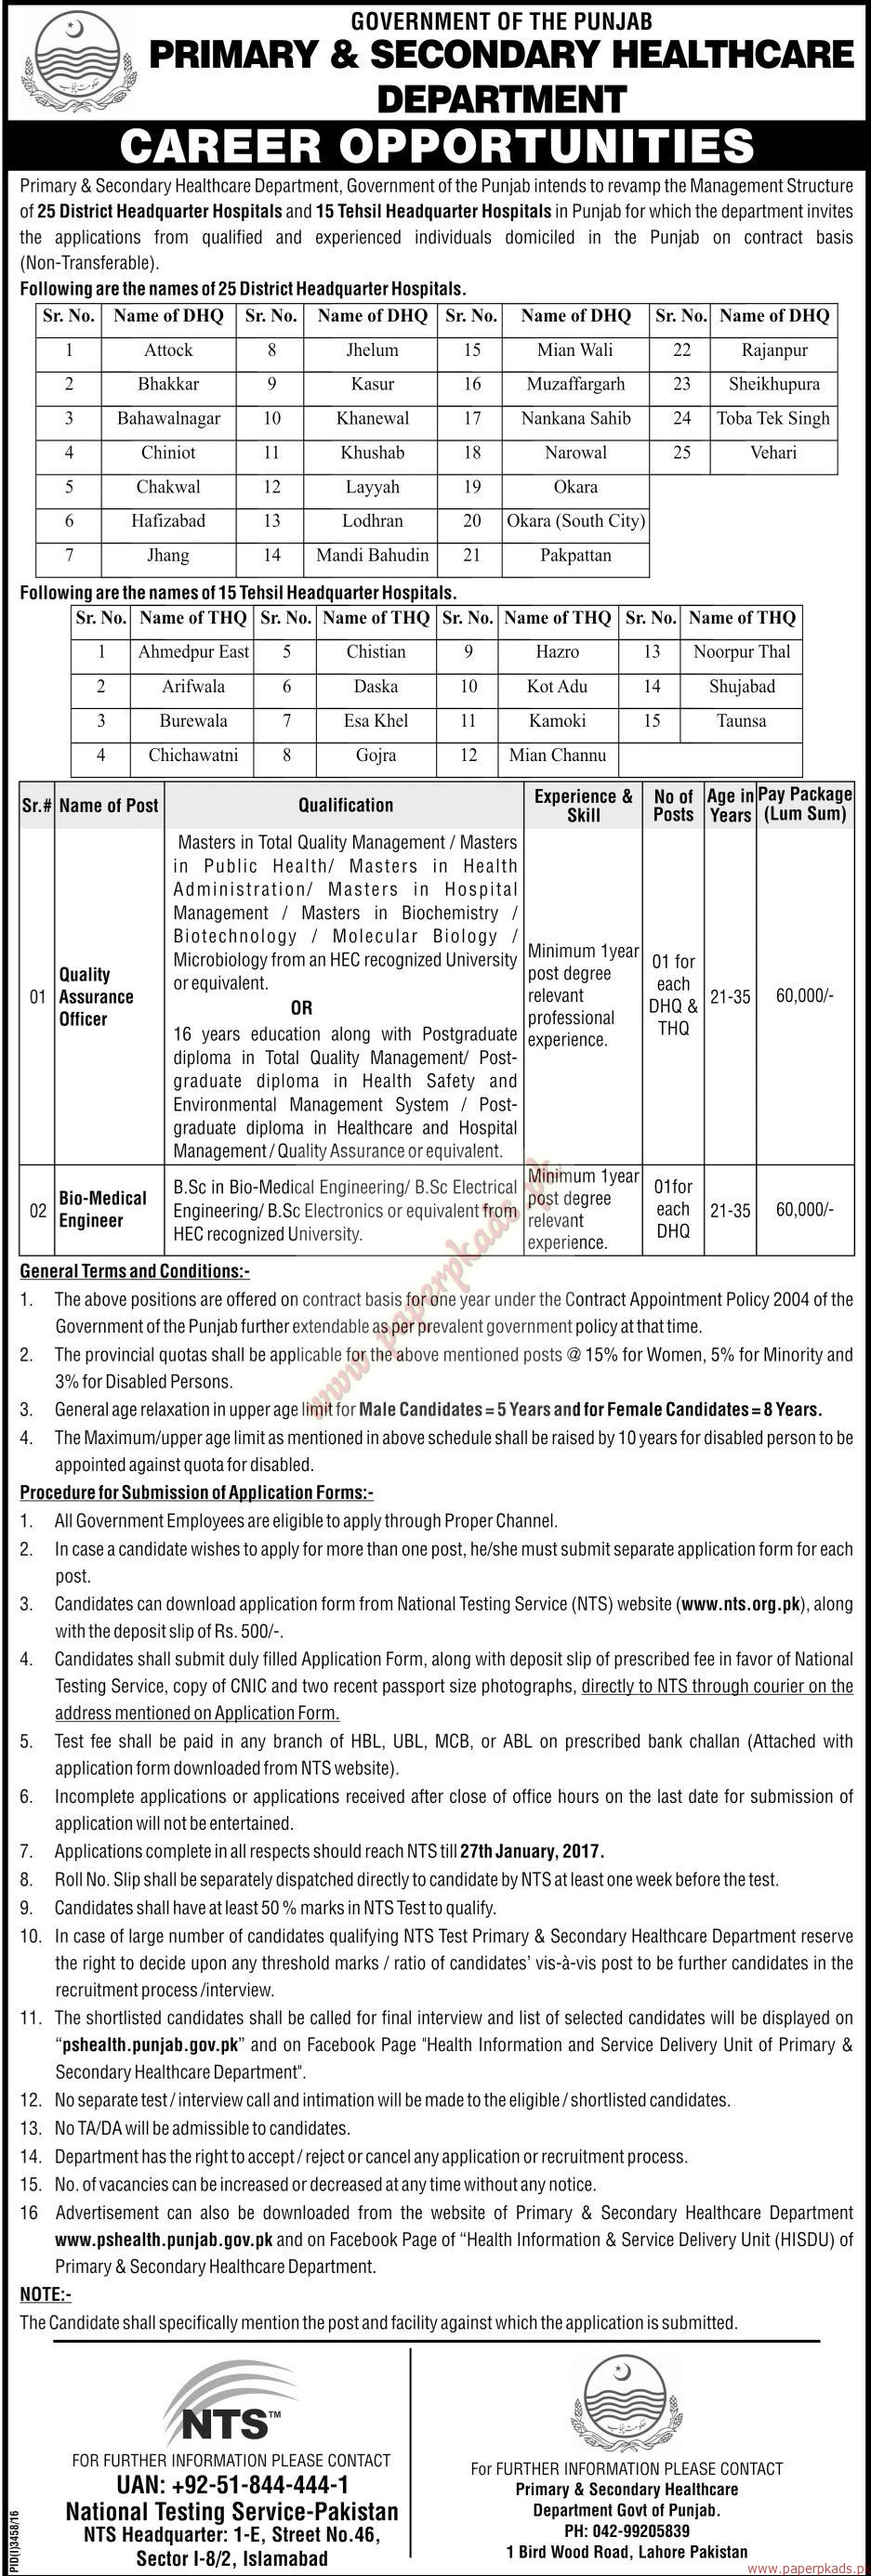 Government of the Punjab - Primary & Secondary HealthCare Department Jobs 5